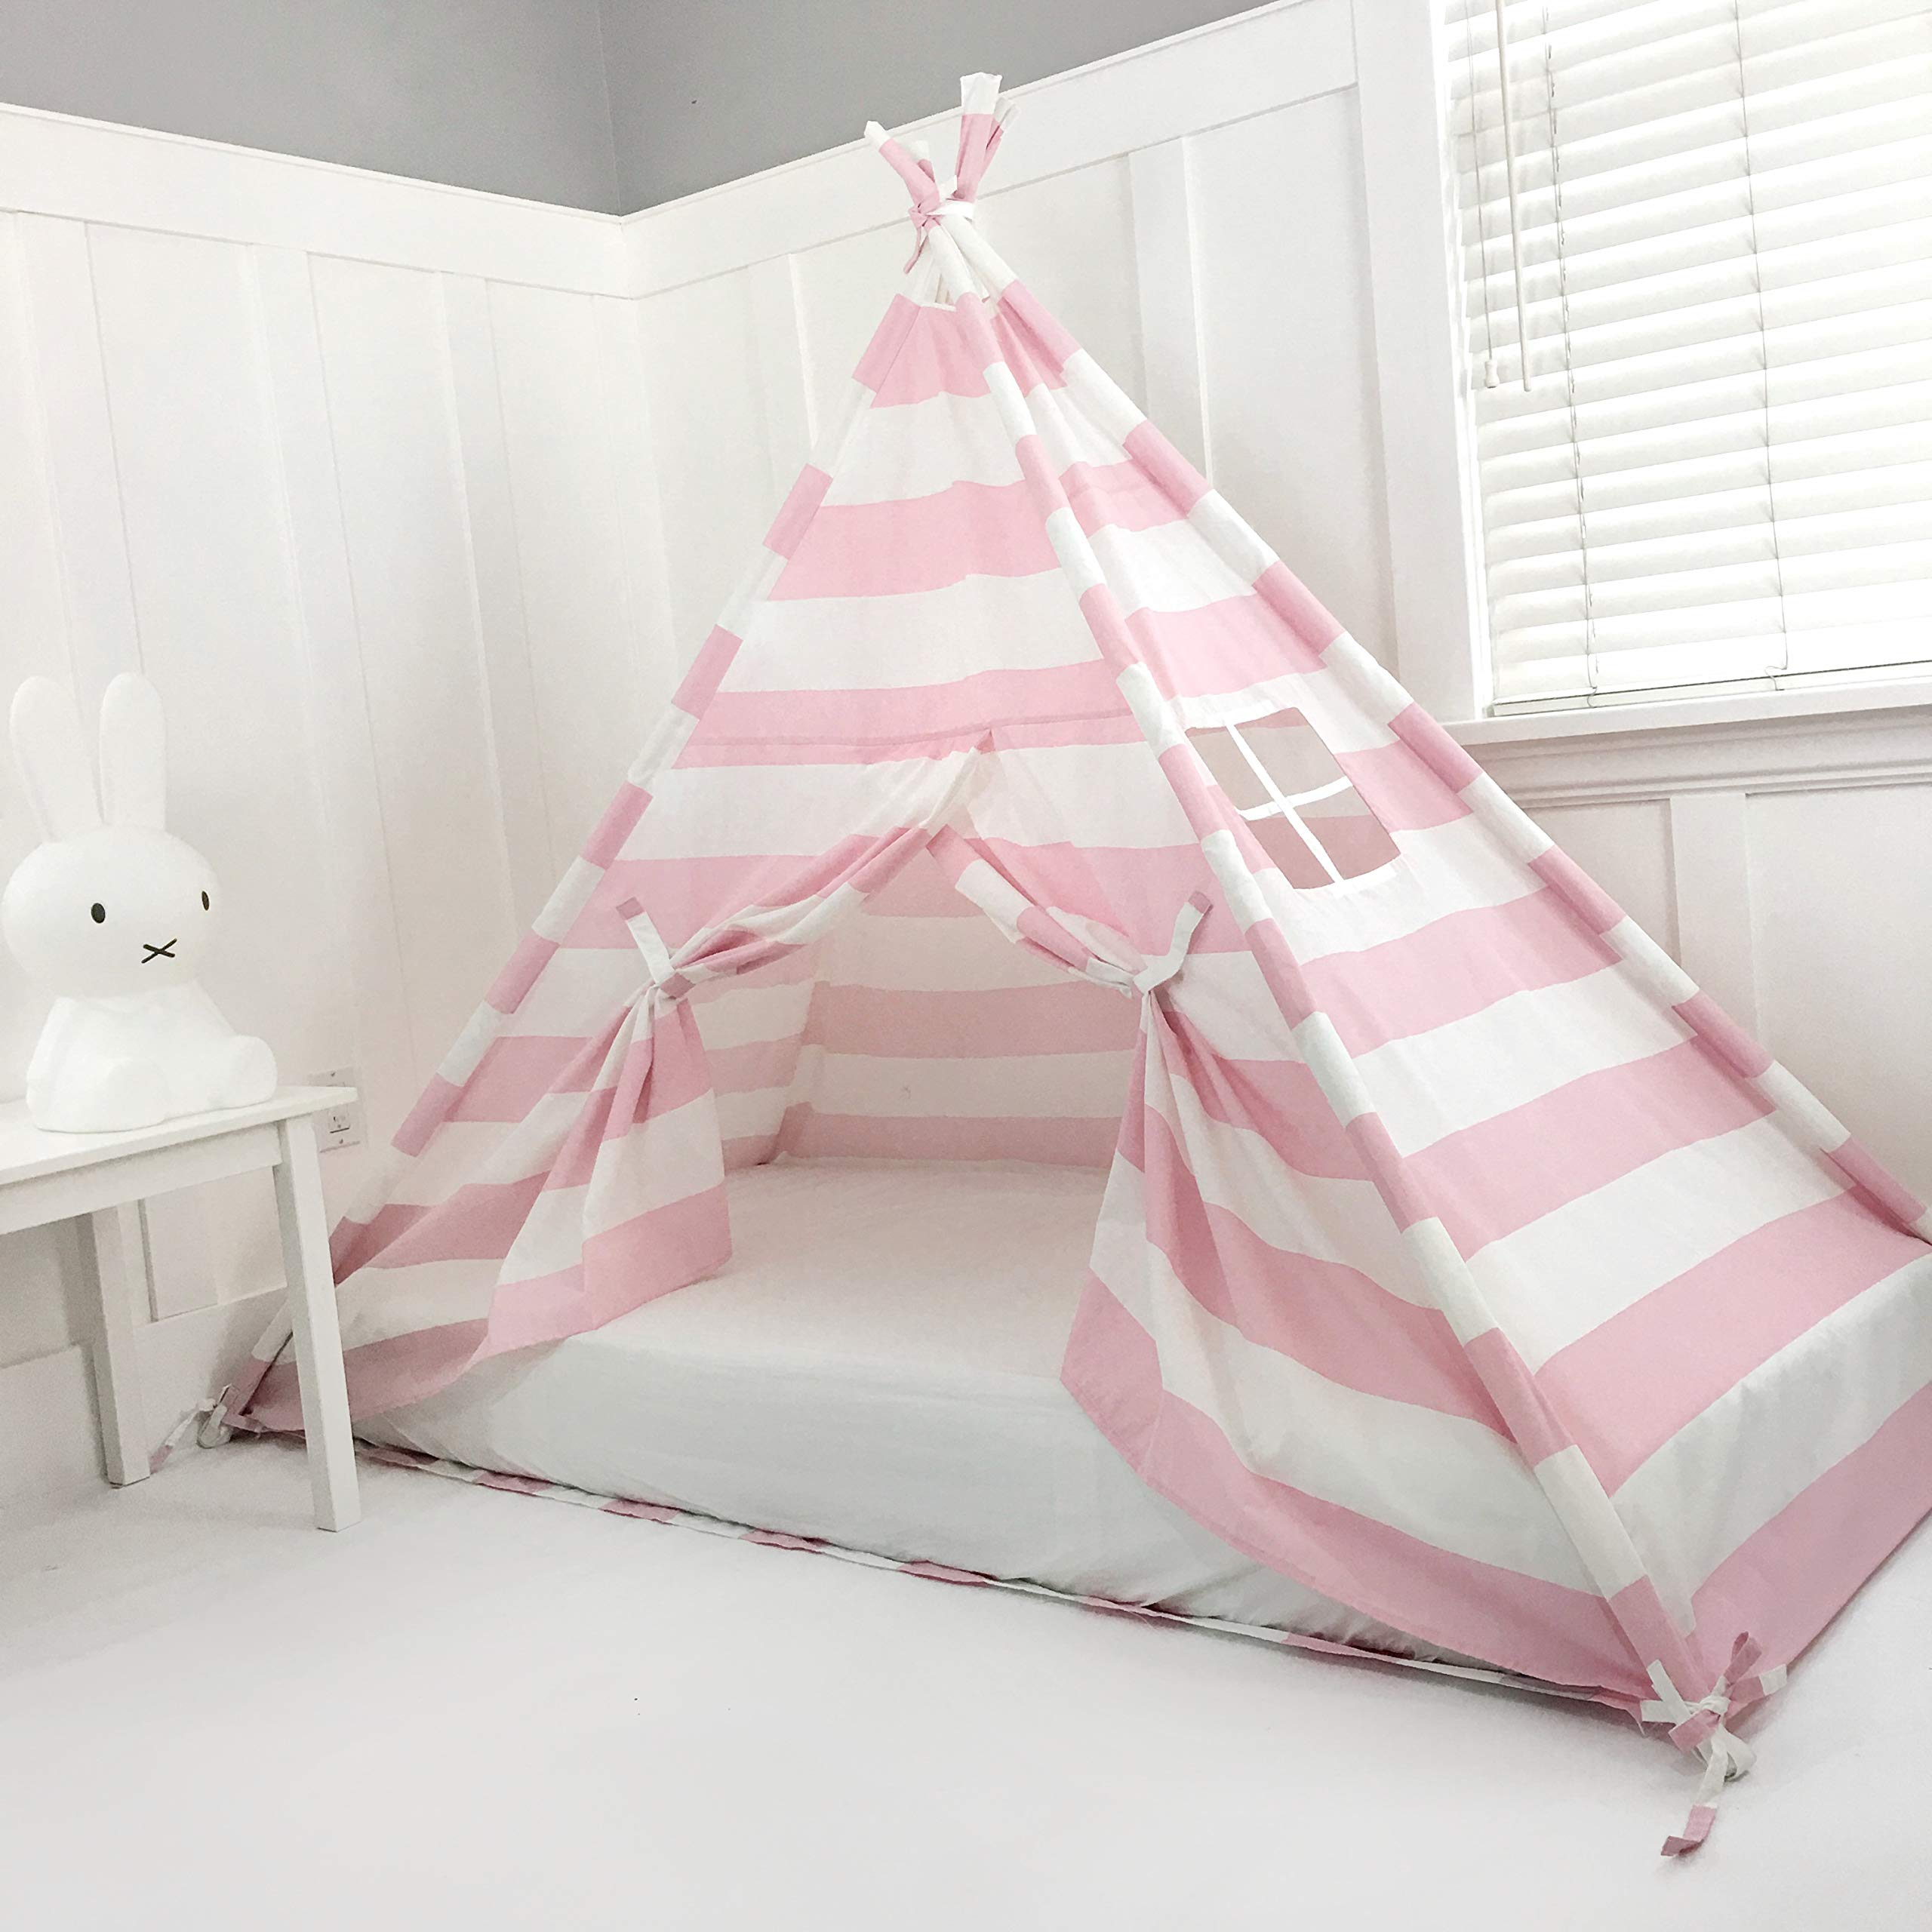 Domestic Objects Handmade Pink Striped Cotton Canopy Play Tent Toddler Bed. Great for Transitioning from Crib to Bed